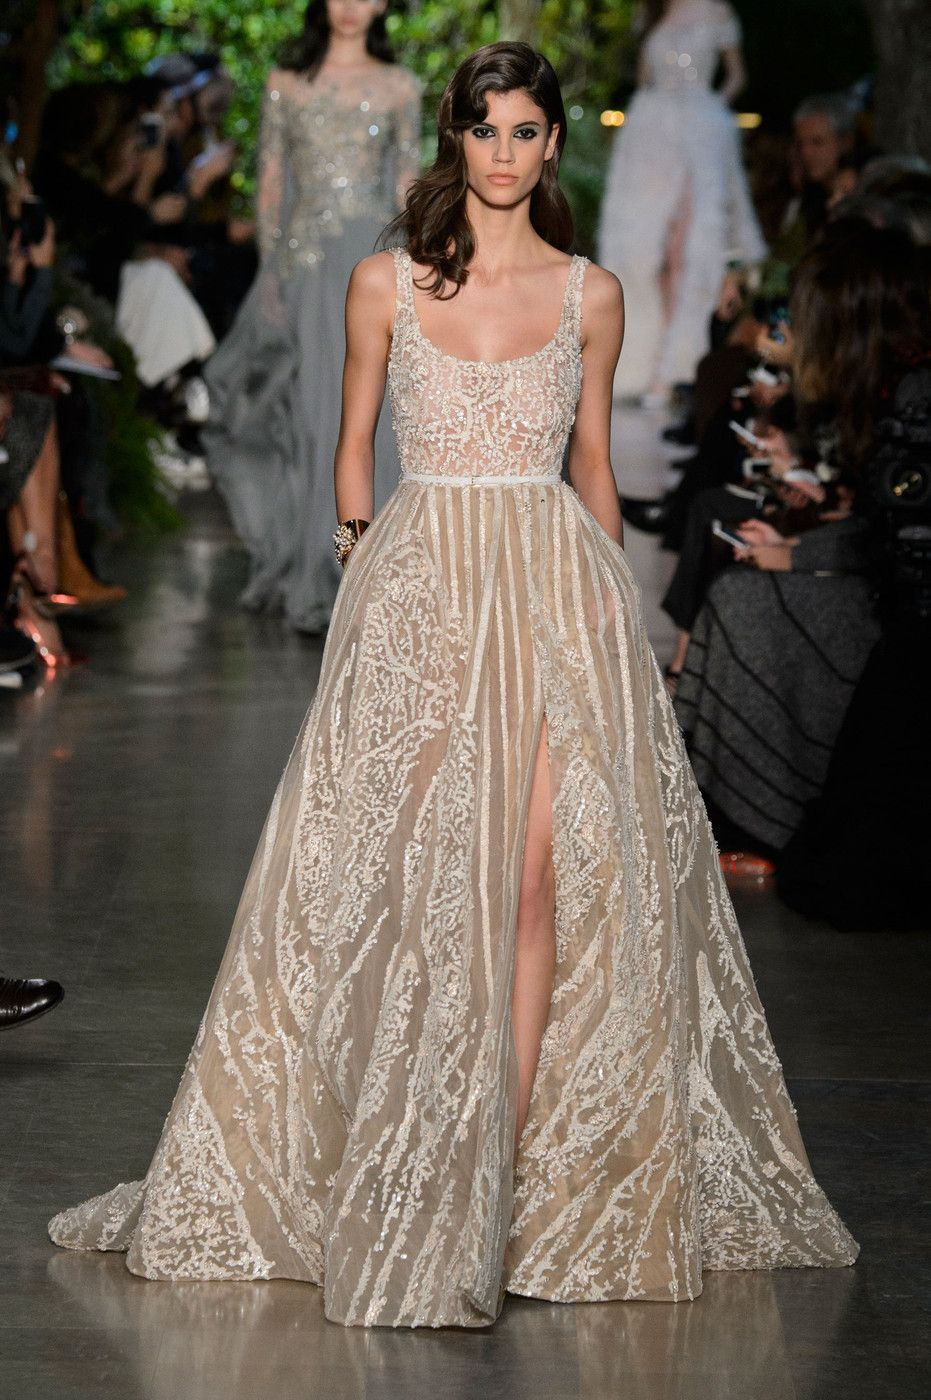 d184c13a6ba1 Elie Saab at Couture Spring 2015